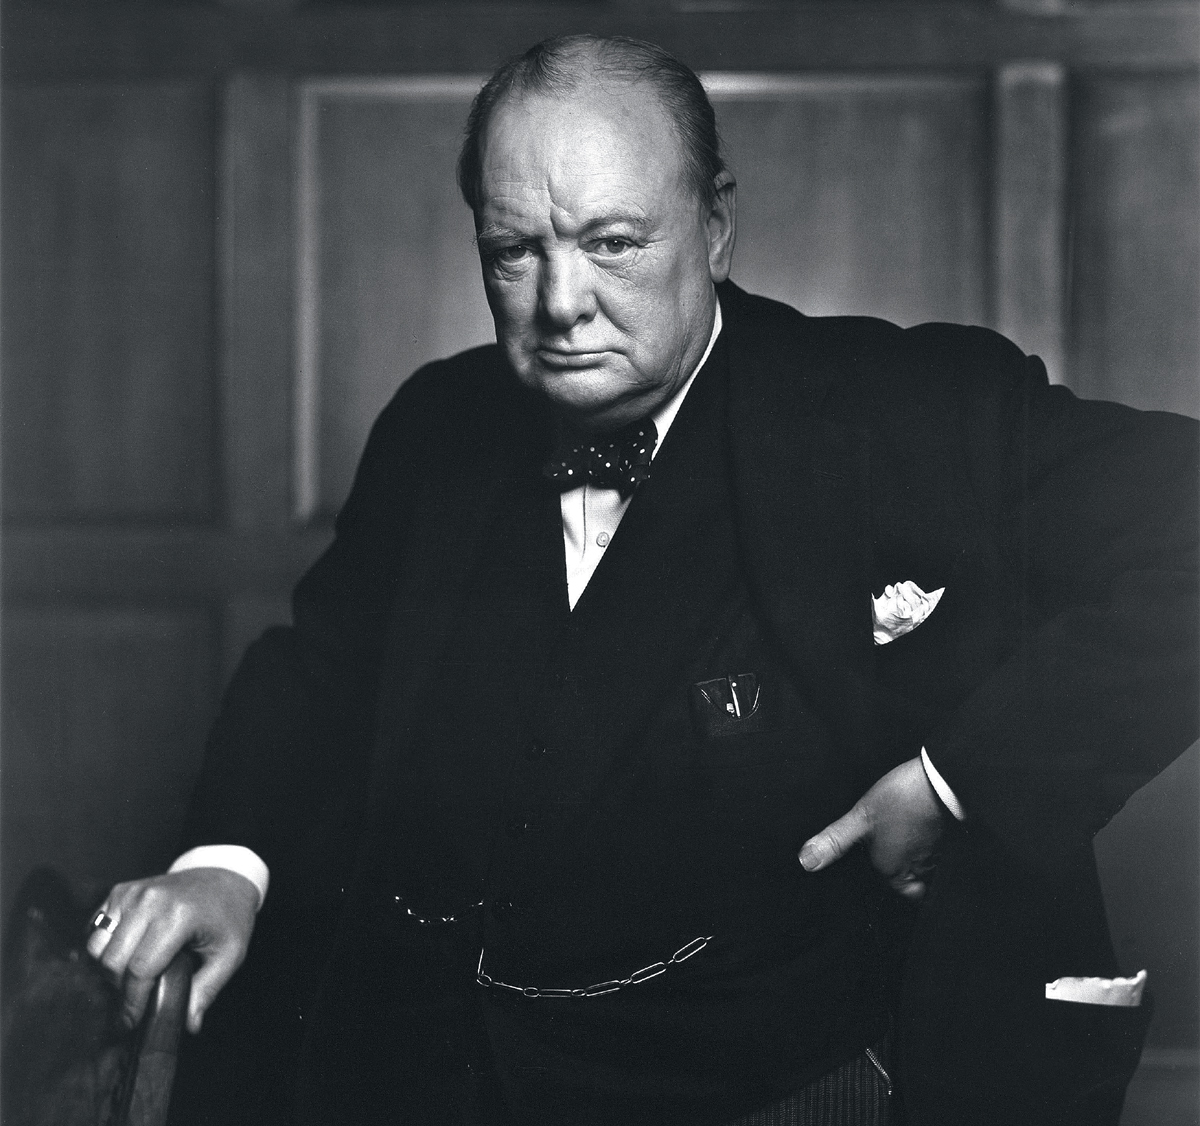 Sir_Winston_Churchill_-_190.jpg